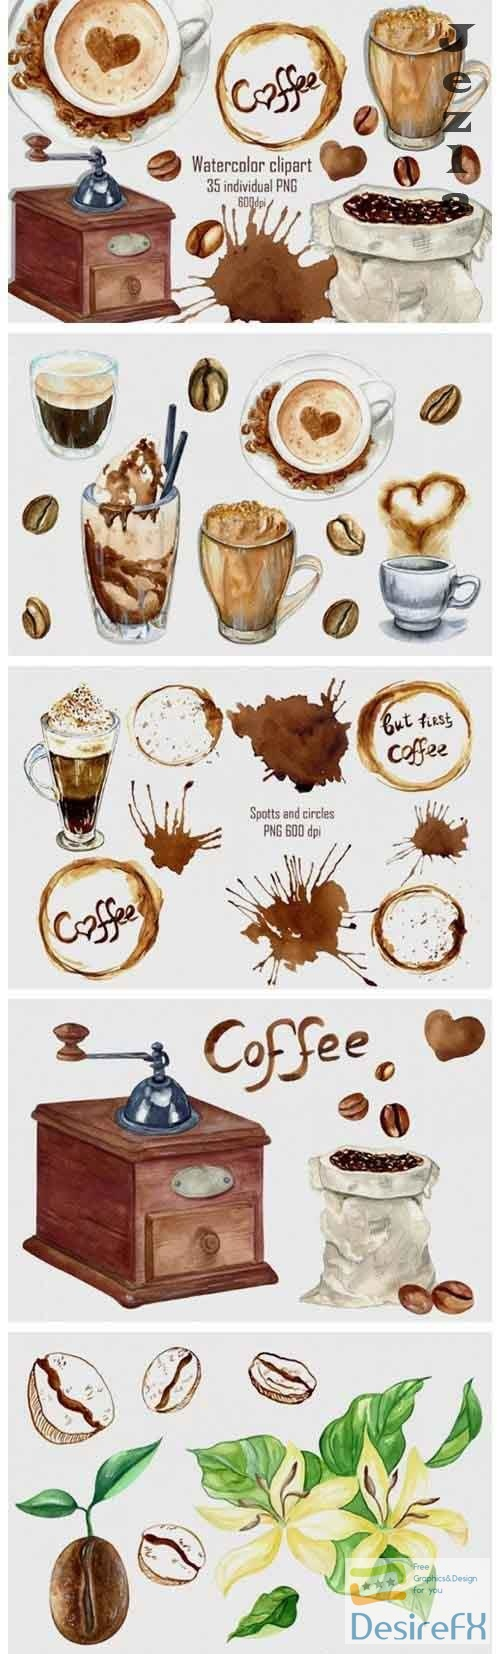 Watercolor coffee clipart, Coffee png, Coffee shop menu - 1205099